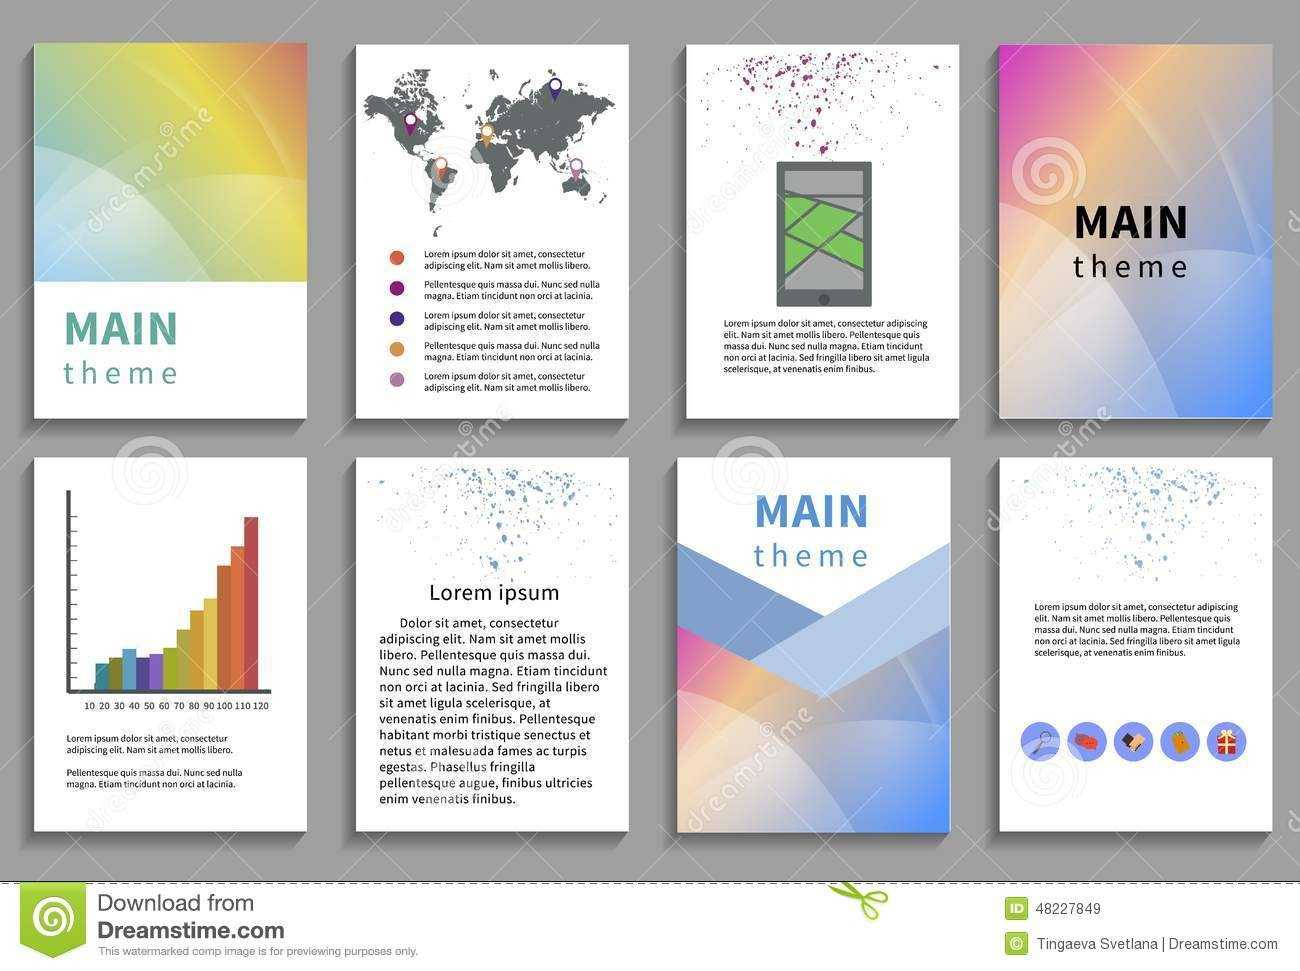 Online Brochure Template Free Ukran Agdiffusion Com Pertaining To Online Brochure Template Free